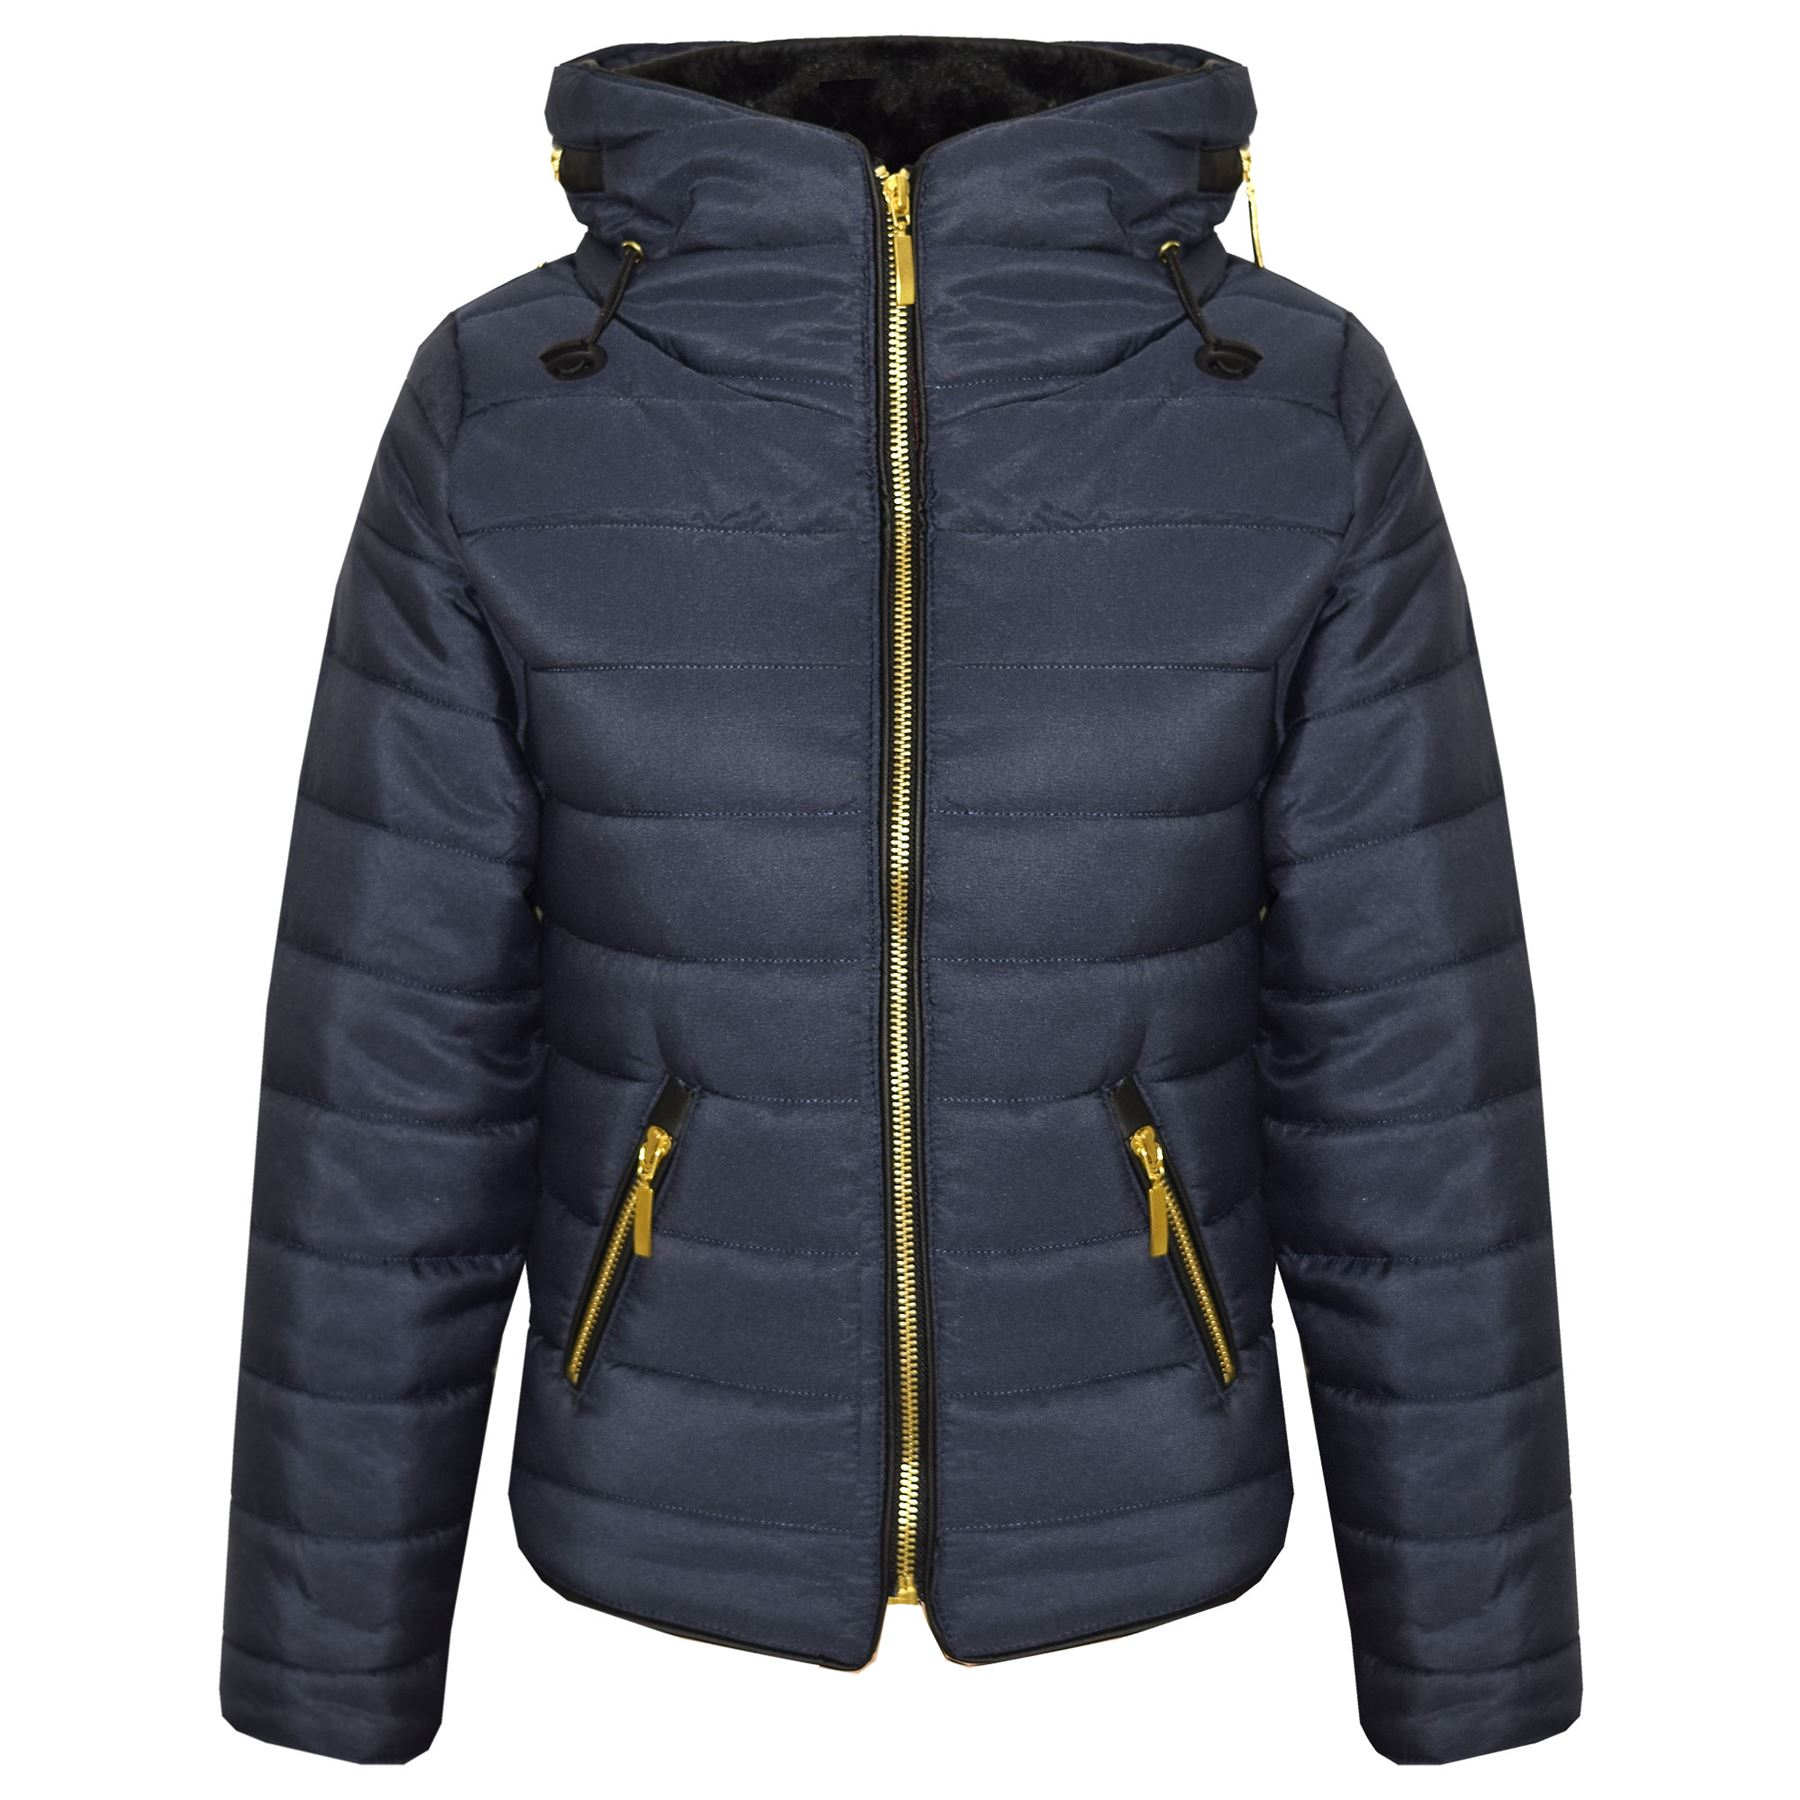 Girls' Coats & Jackets. This range of coats and jackets for girls has been designed to protect kids from cold and rainy weather. Our line-up includes padded jackets, fleece zip-ups and water-resistant pocketable parkas that fight wind and rain.